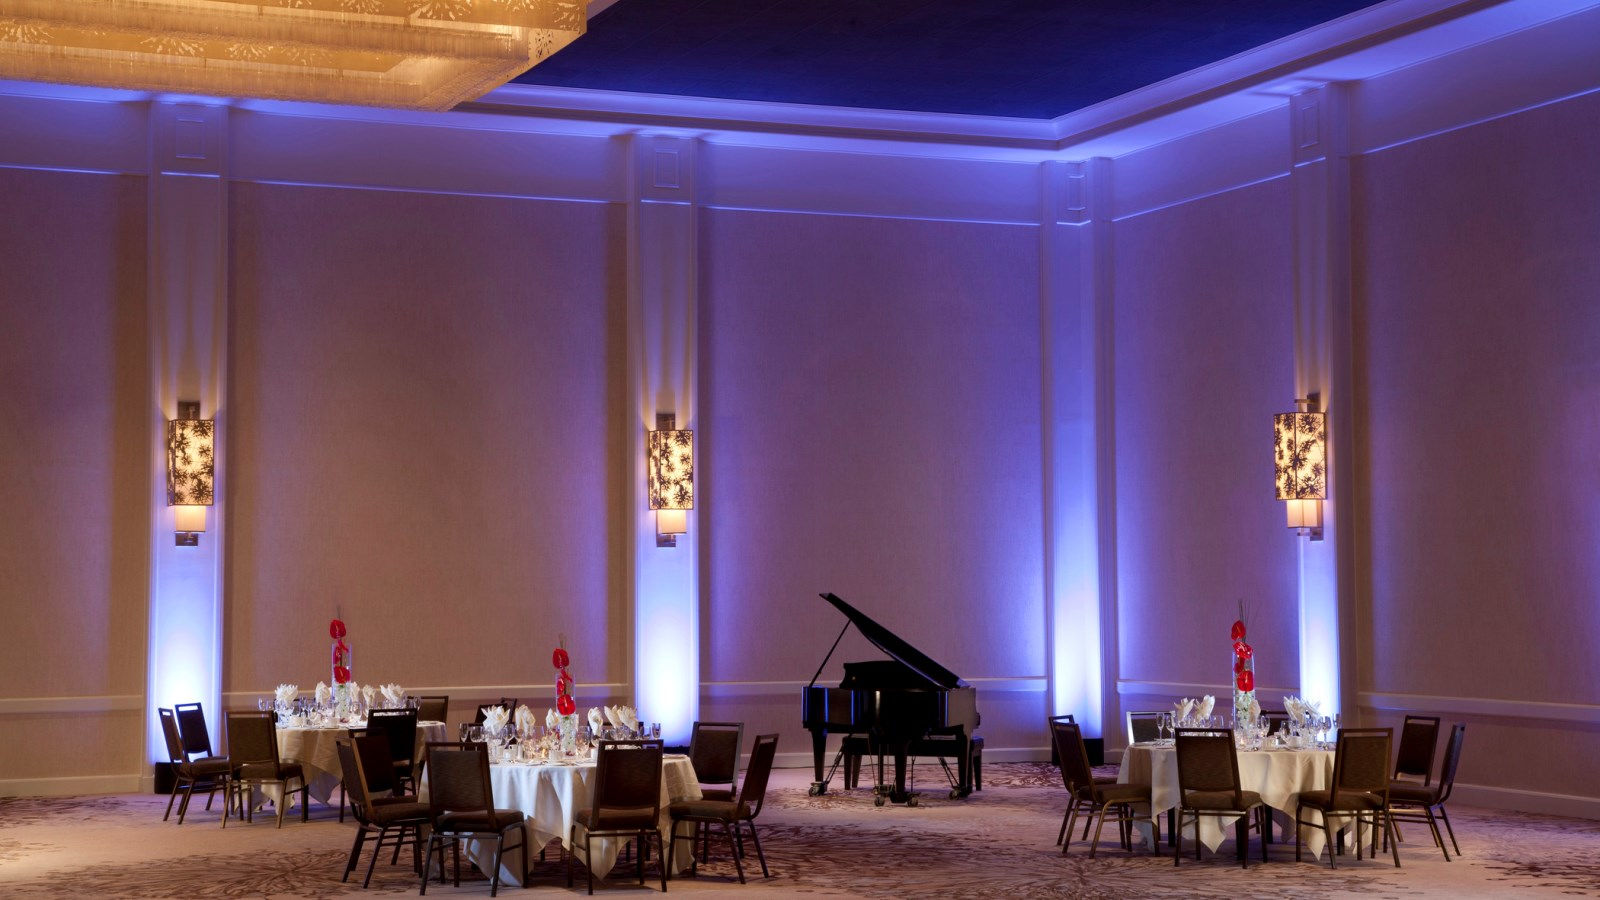 Rosemont Wedding - The Grand Ballroom